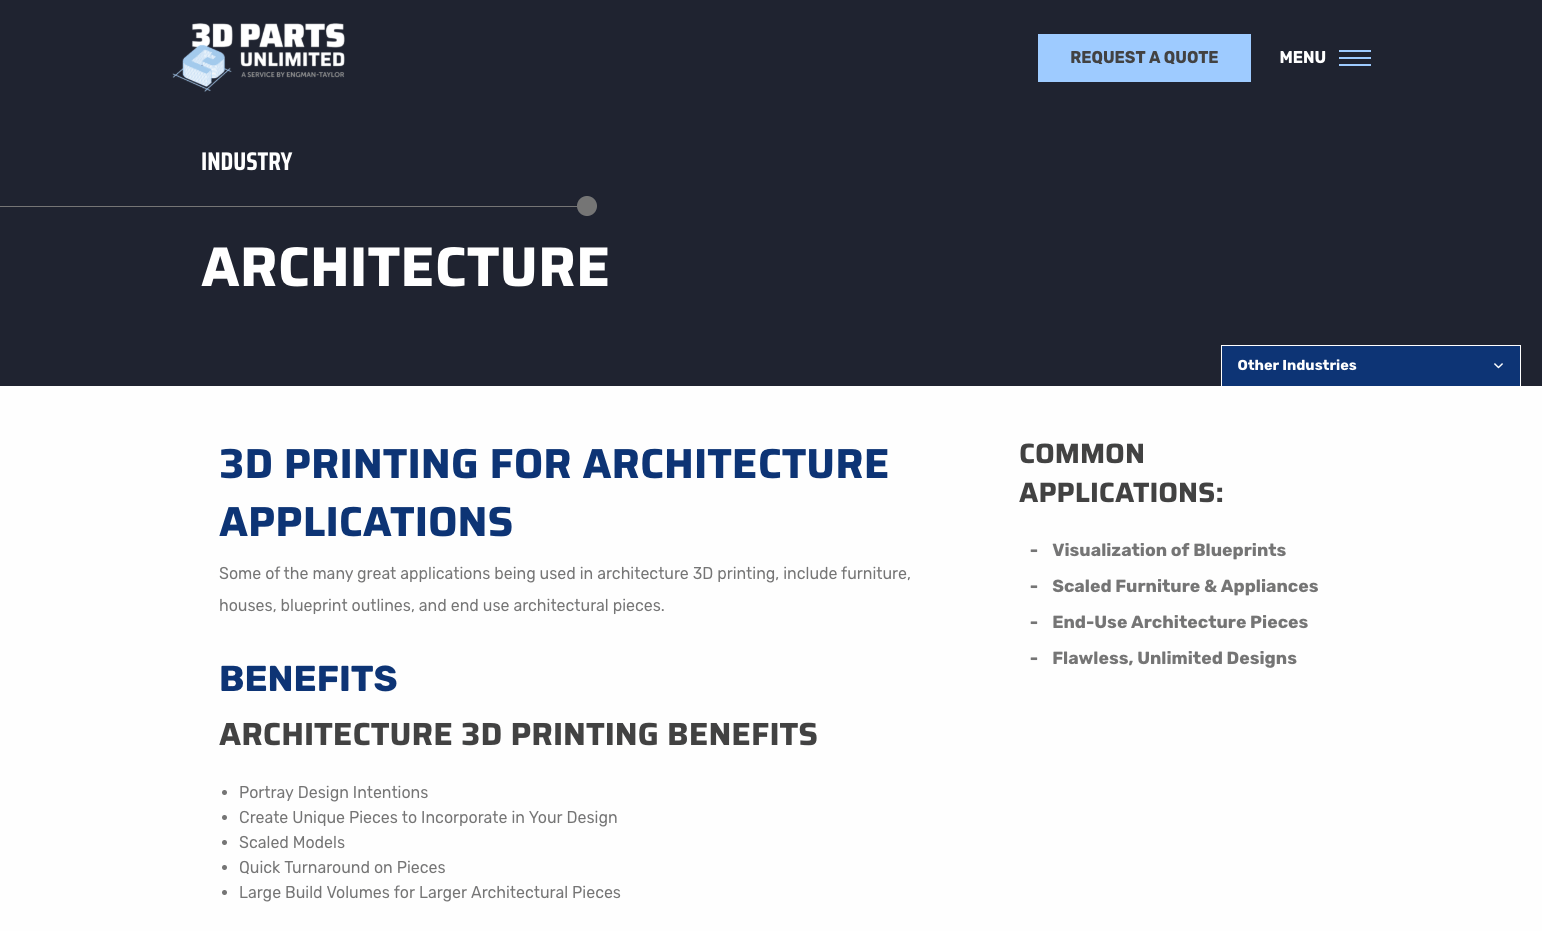 3D Parts Unlimited industries webpage